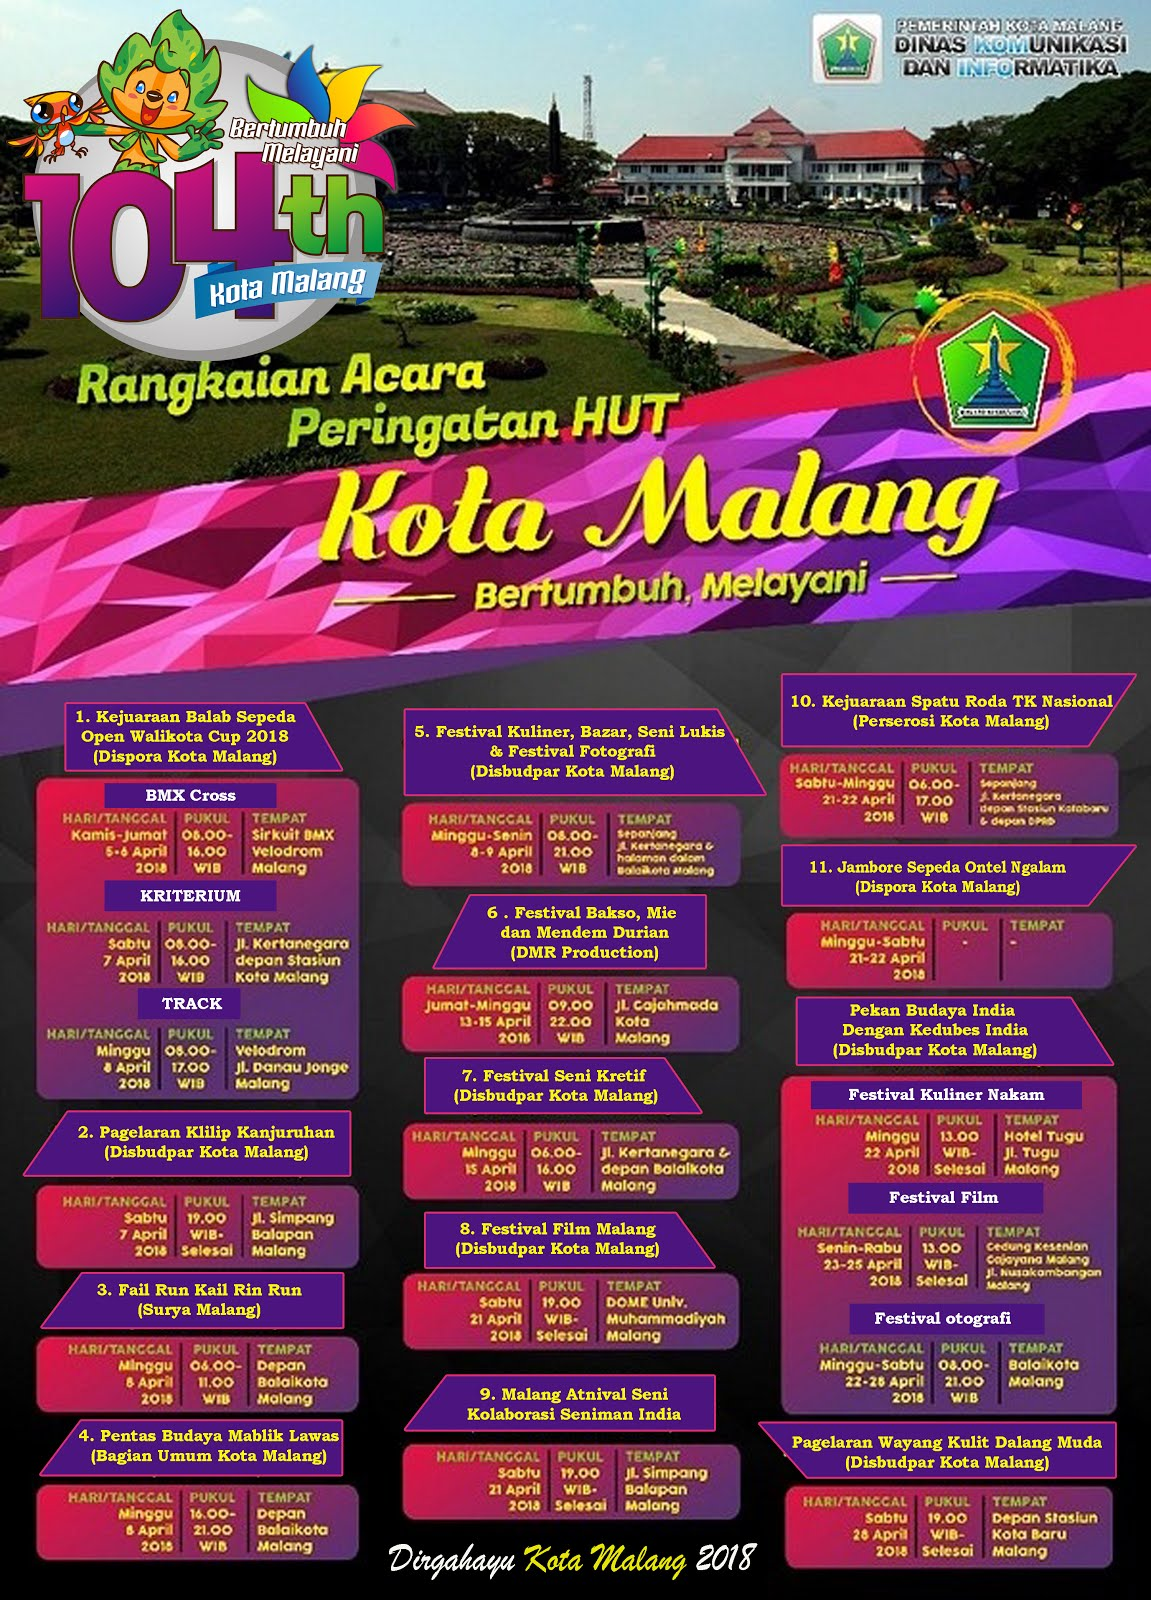 HUT KOTA MALANG 104 TH